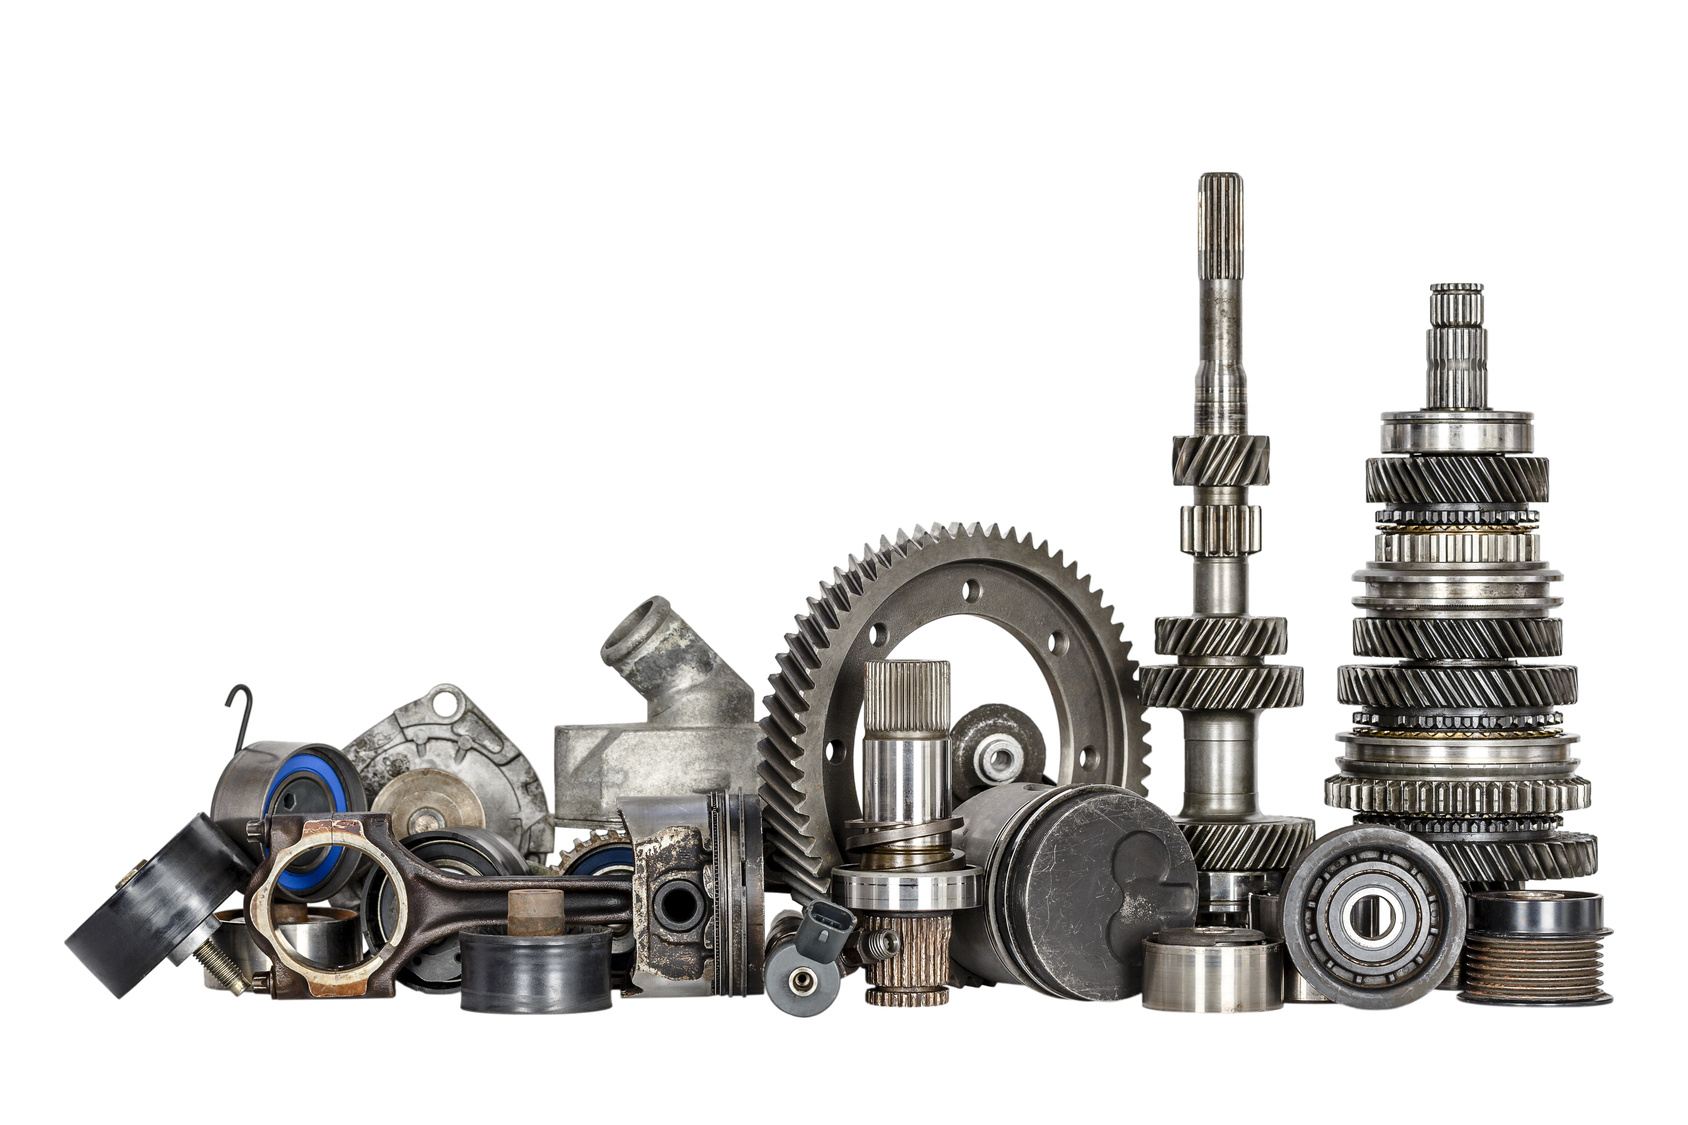 Heavy duty truck parts - We Supply Genuine And Oem Transmission Parts Gears Gear Shafts Gear